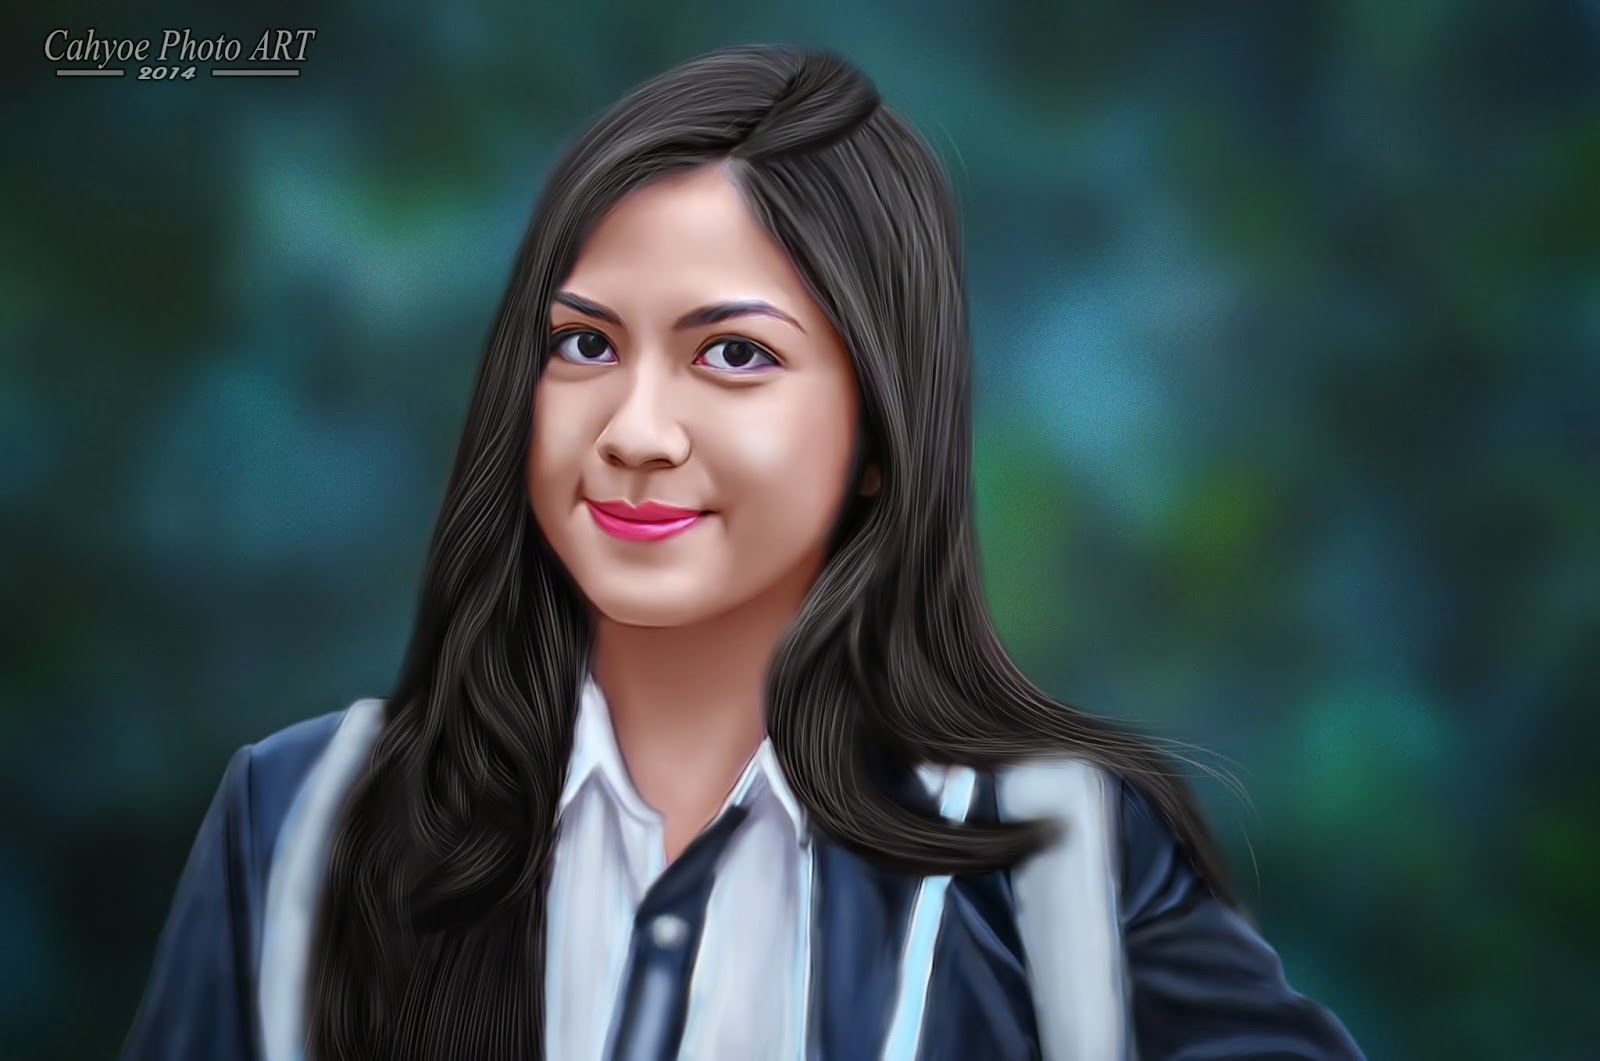 Cahyoe Blog: Tutorial Smudge Painting Photoshop